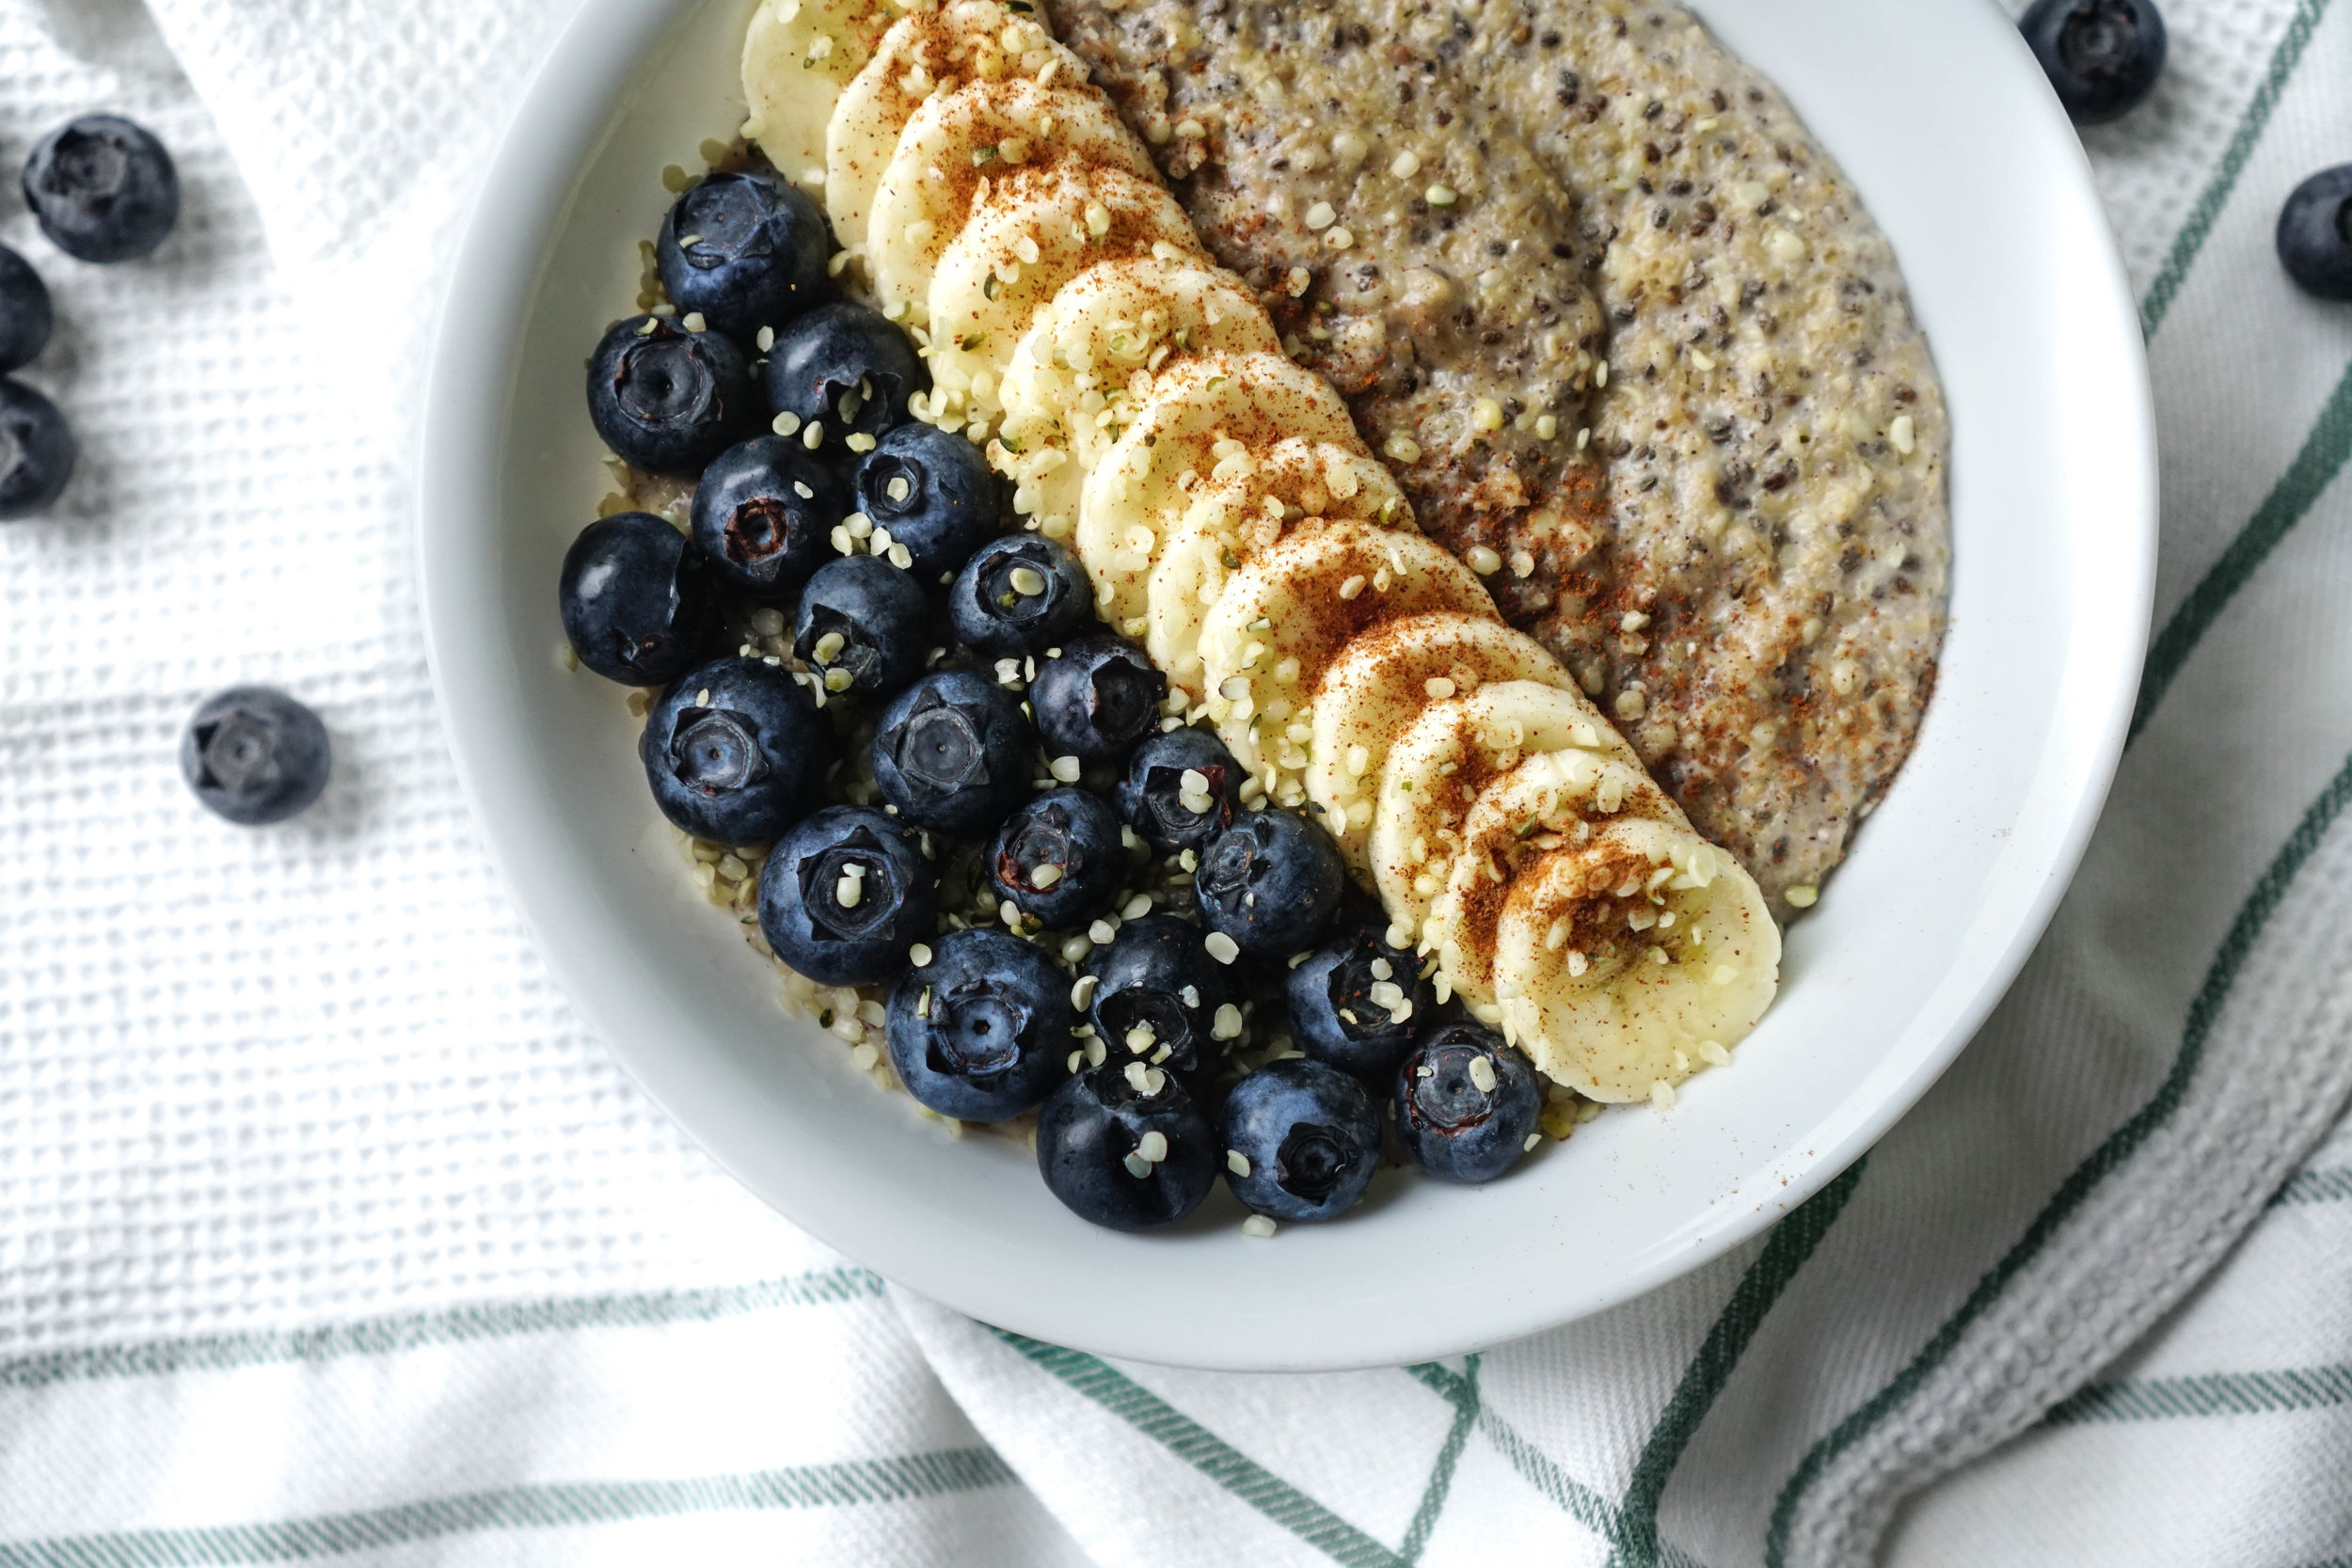 Cinnamon-Chia-Hemp-Oats-1.jpg